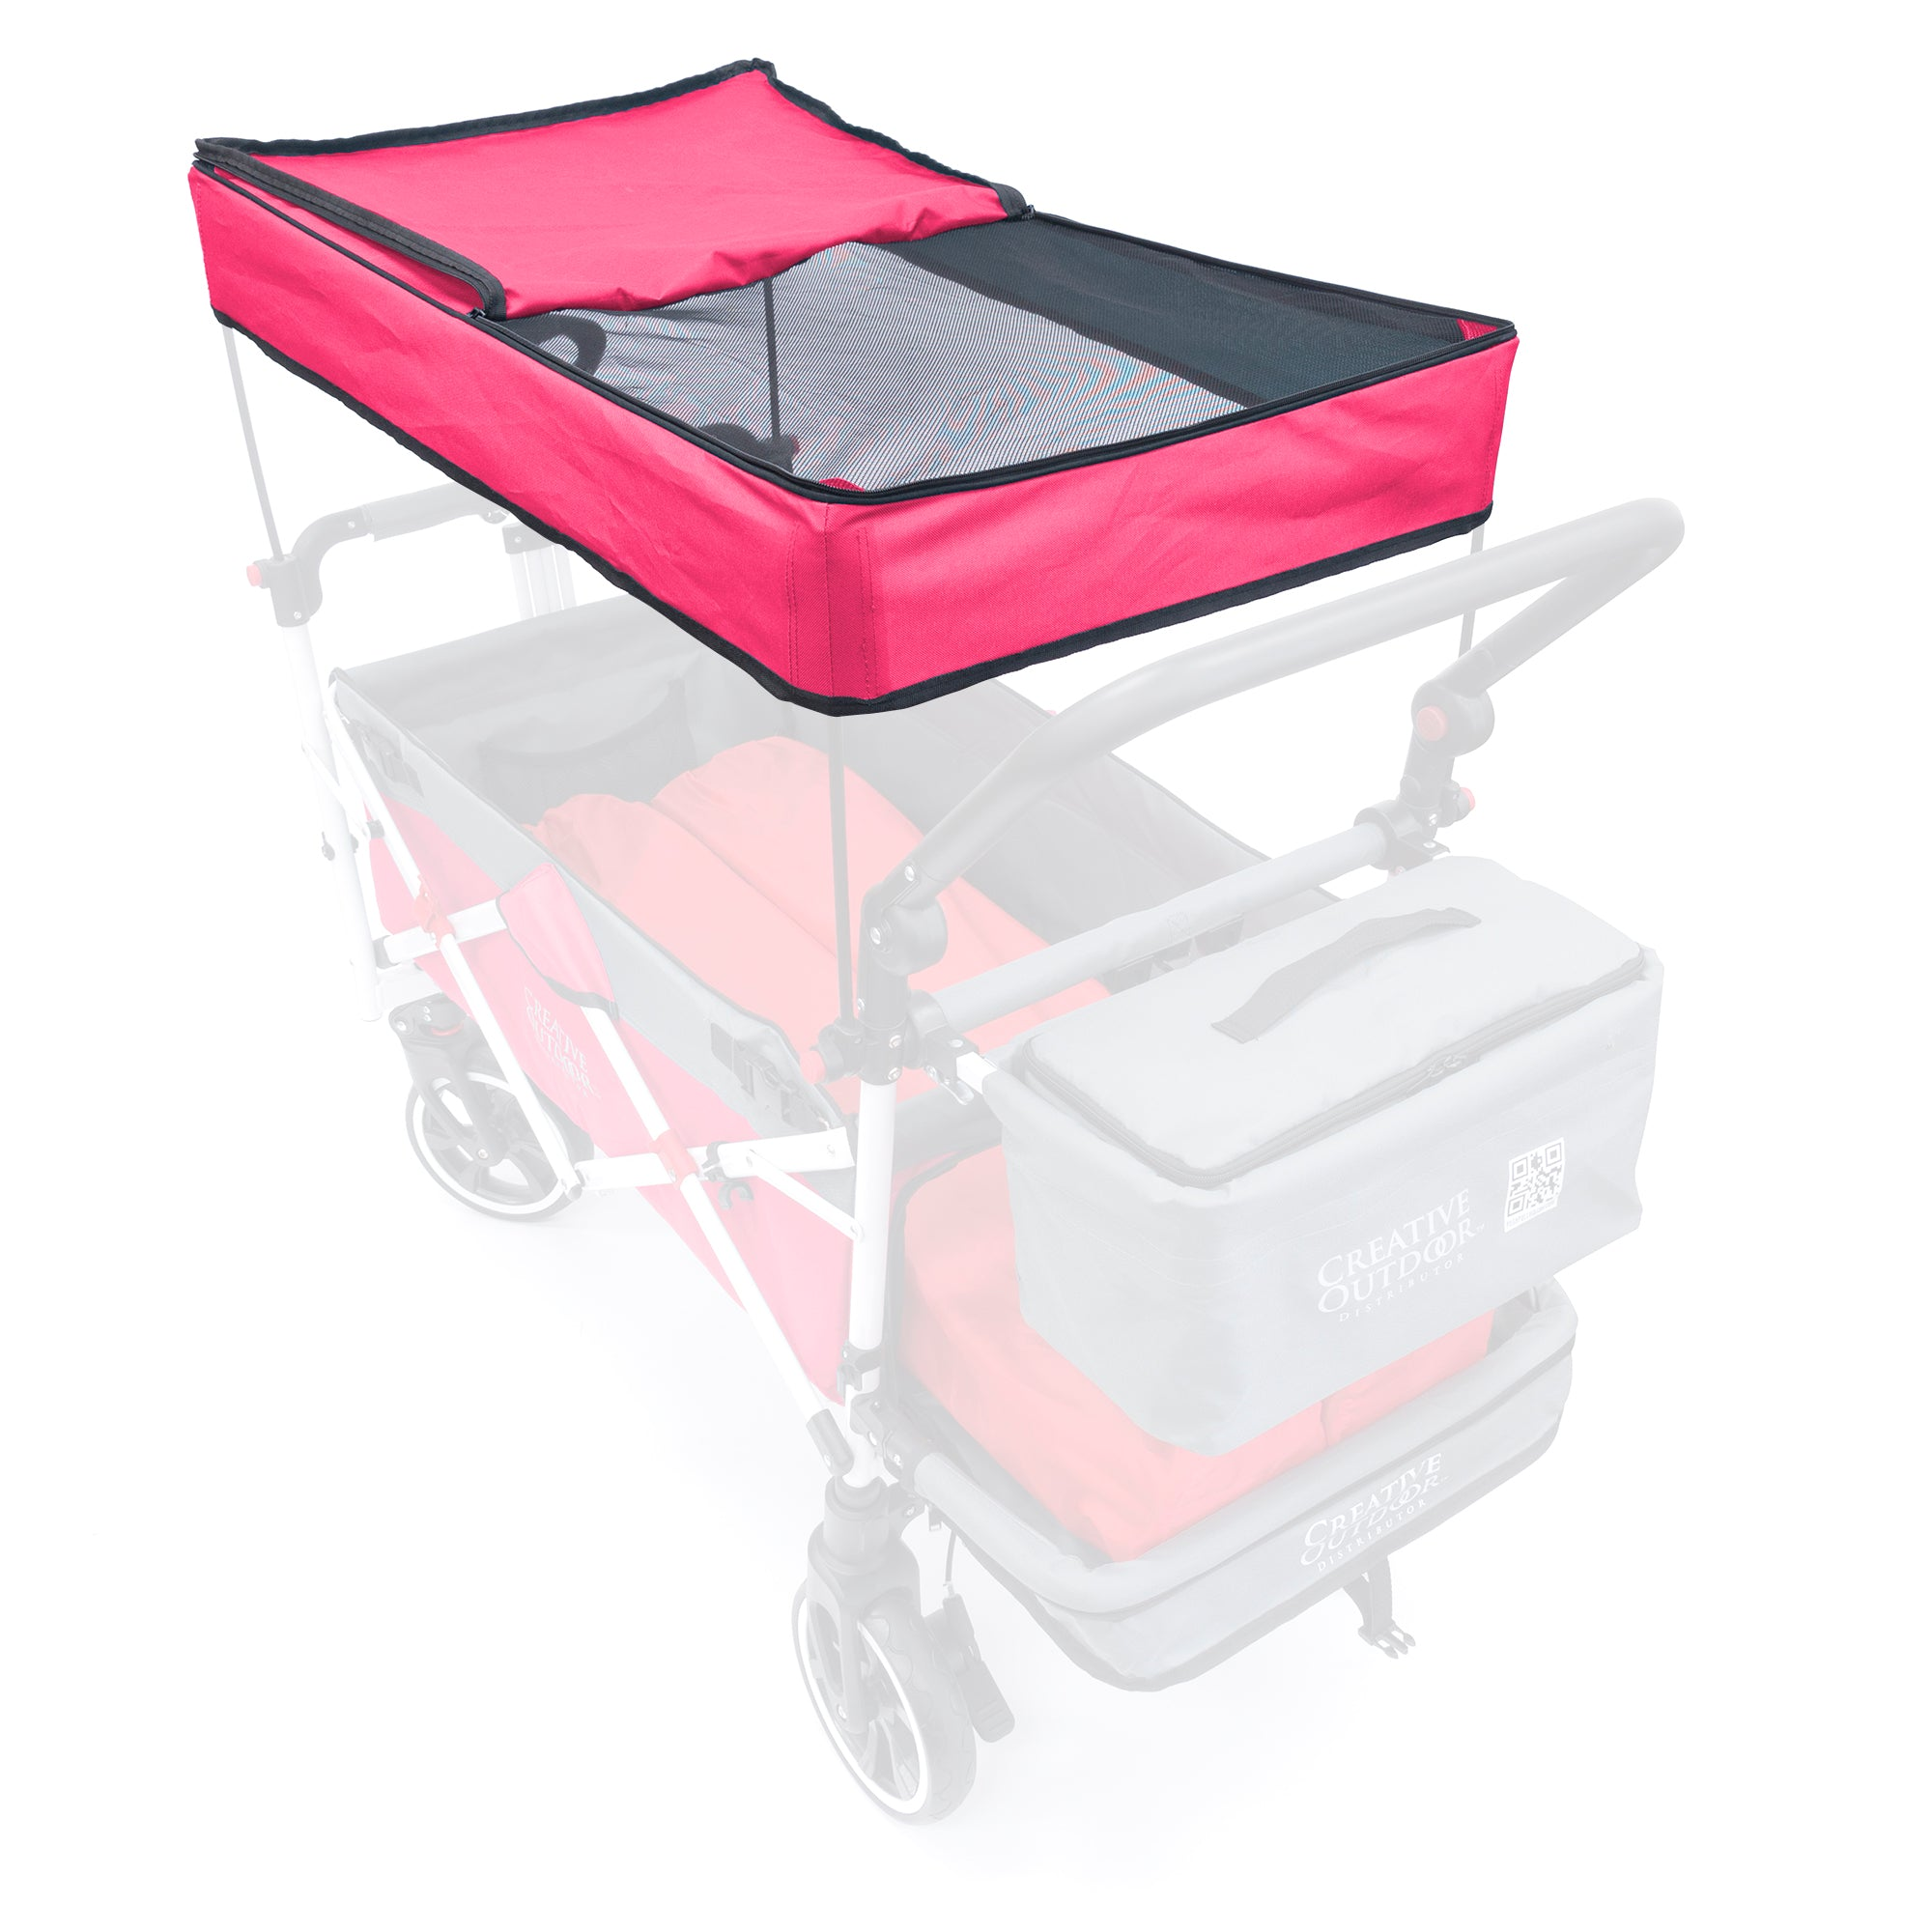 Push Pull Folding Wagon Titanium Series Replacement Canopy - Pink